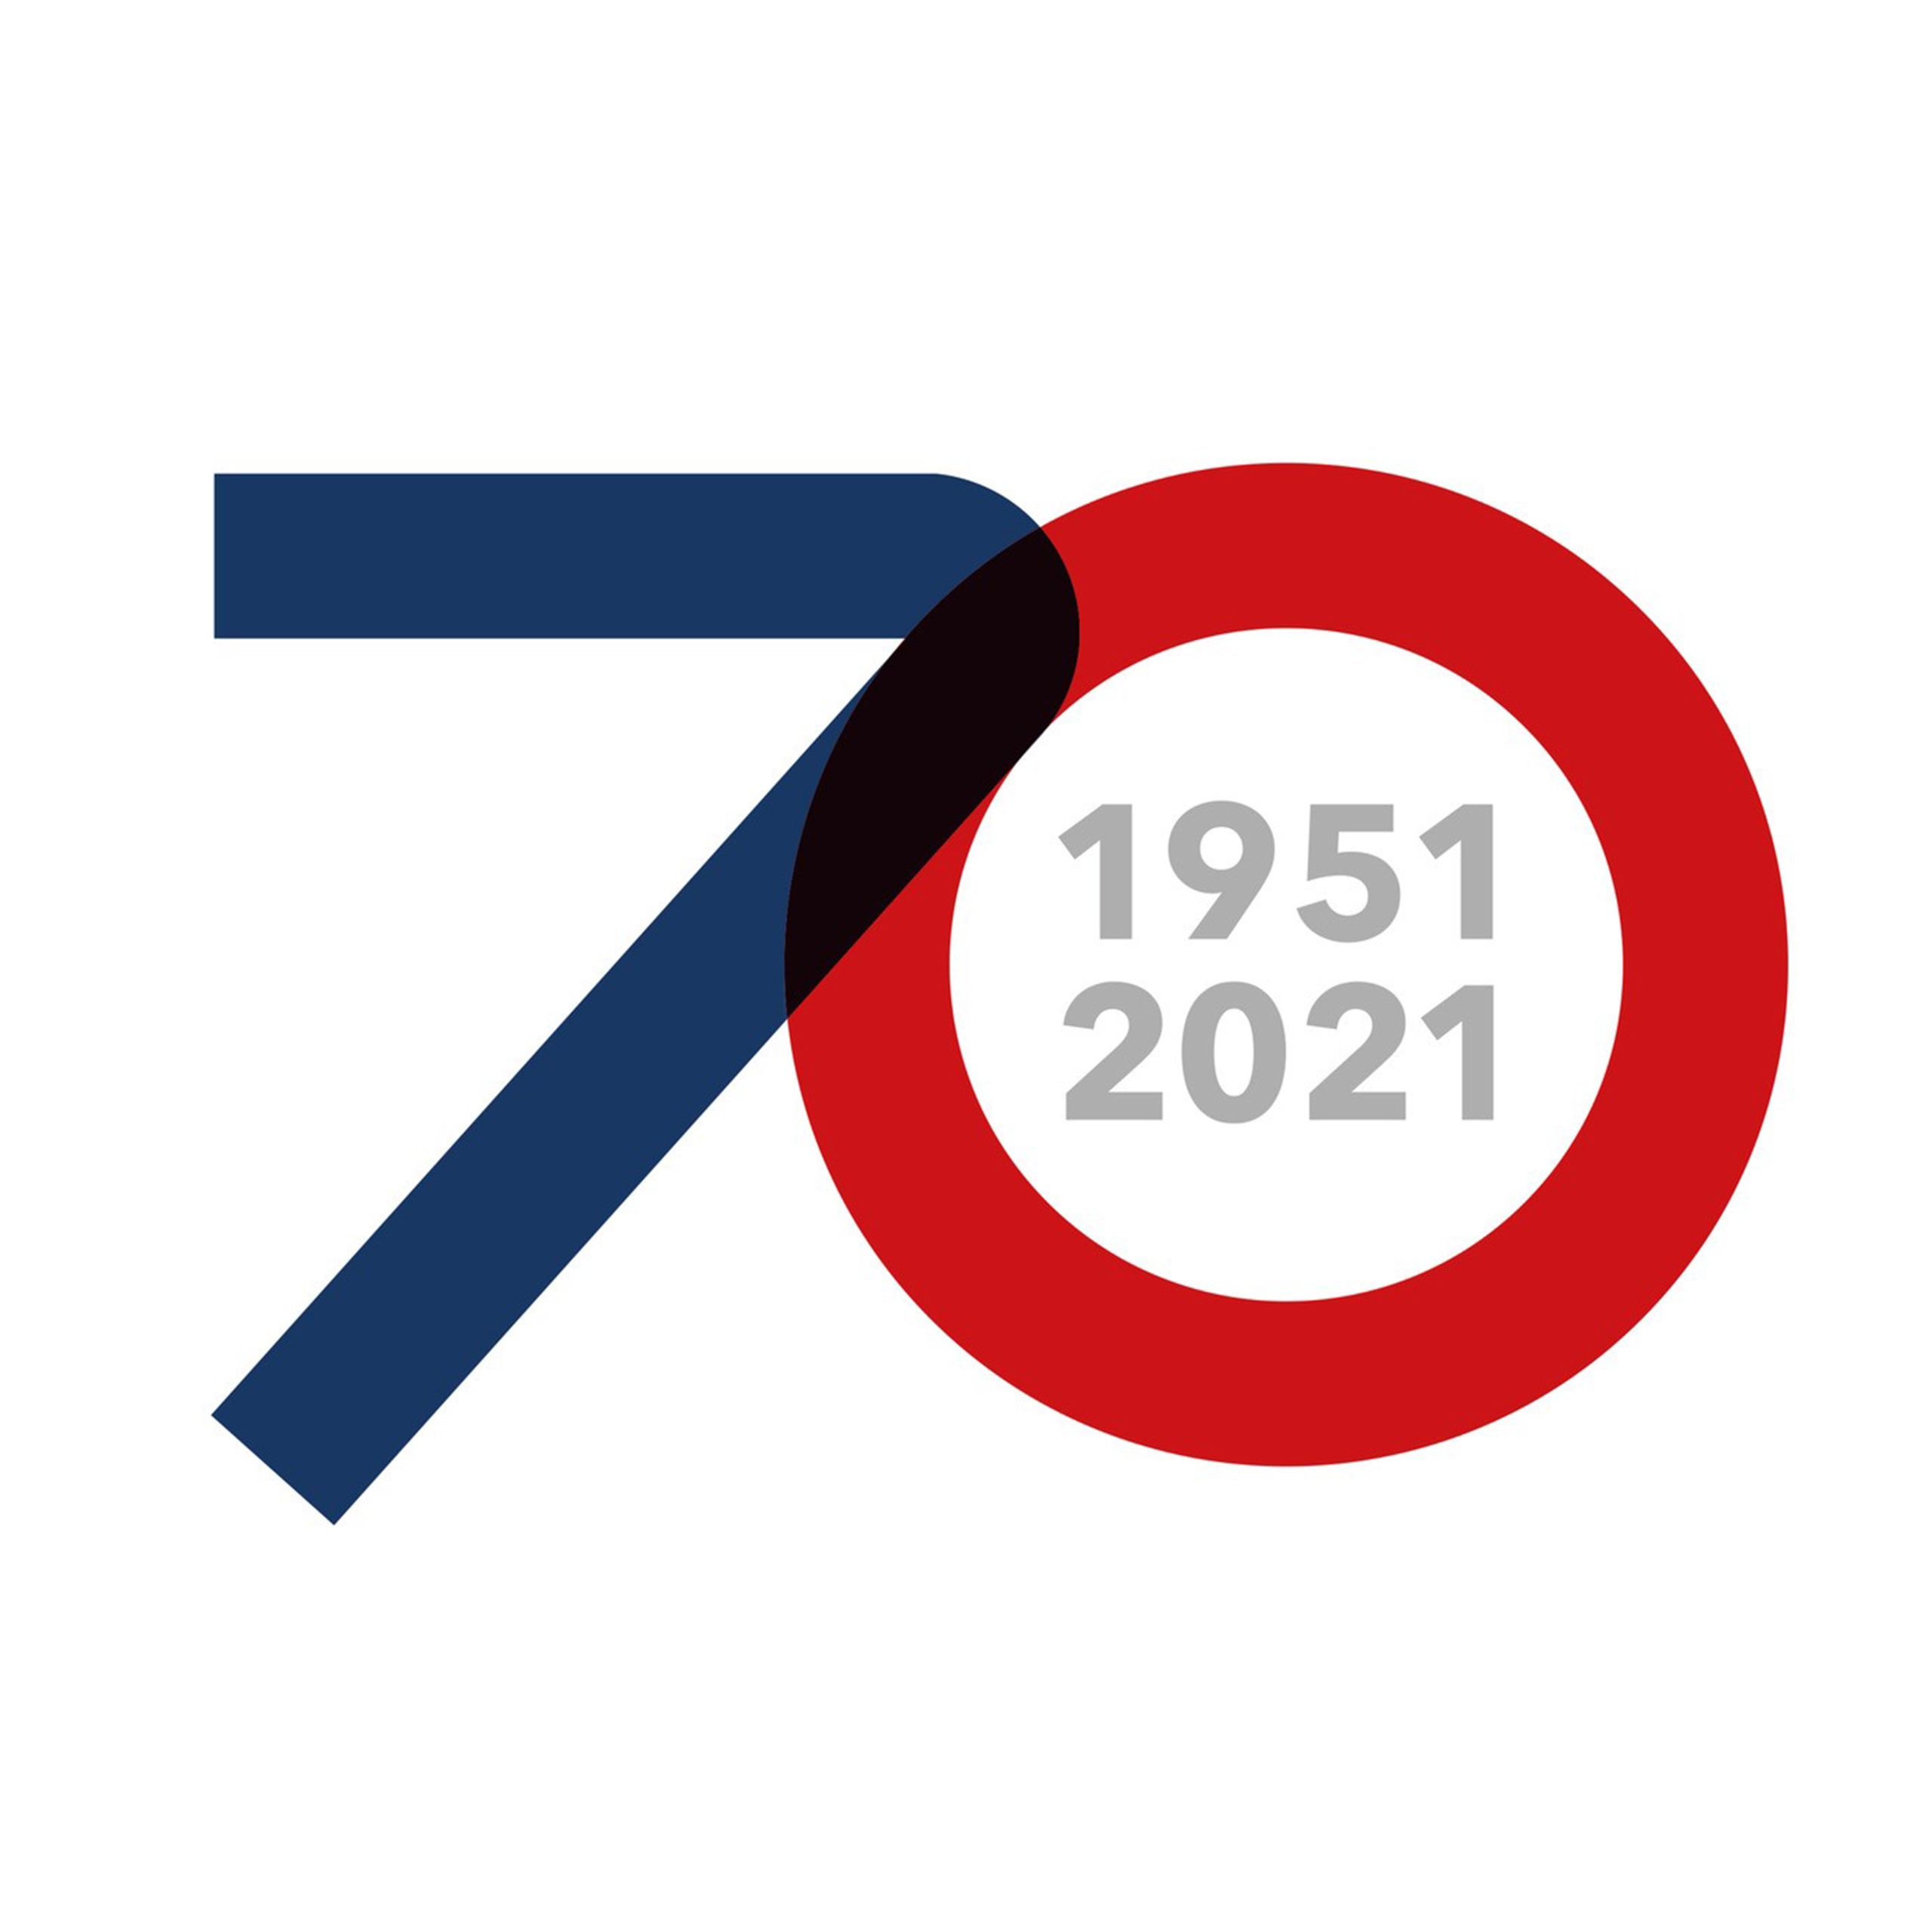 70 years Grieshaber Logistik Group AG